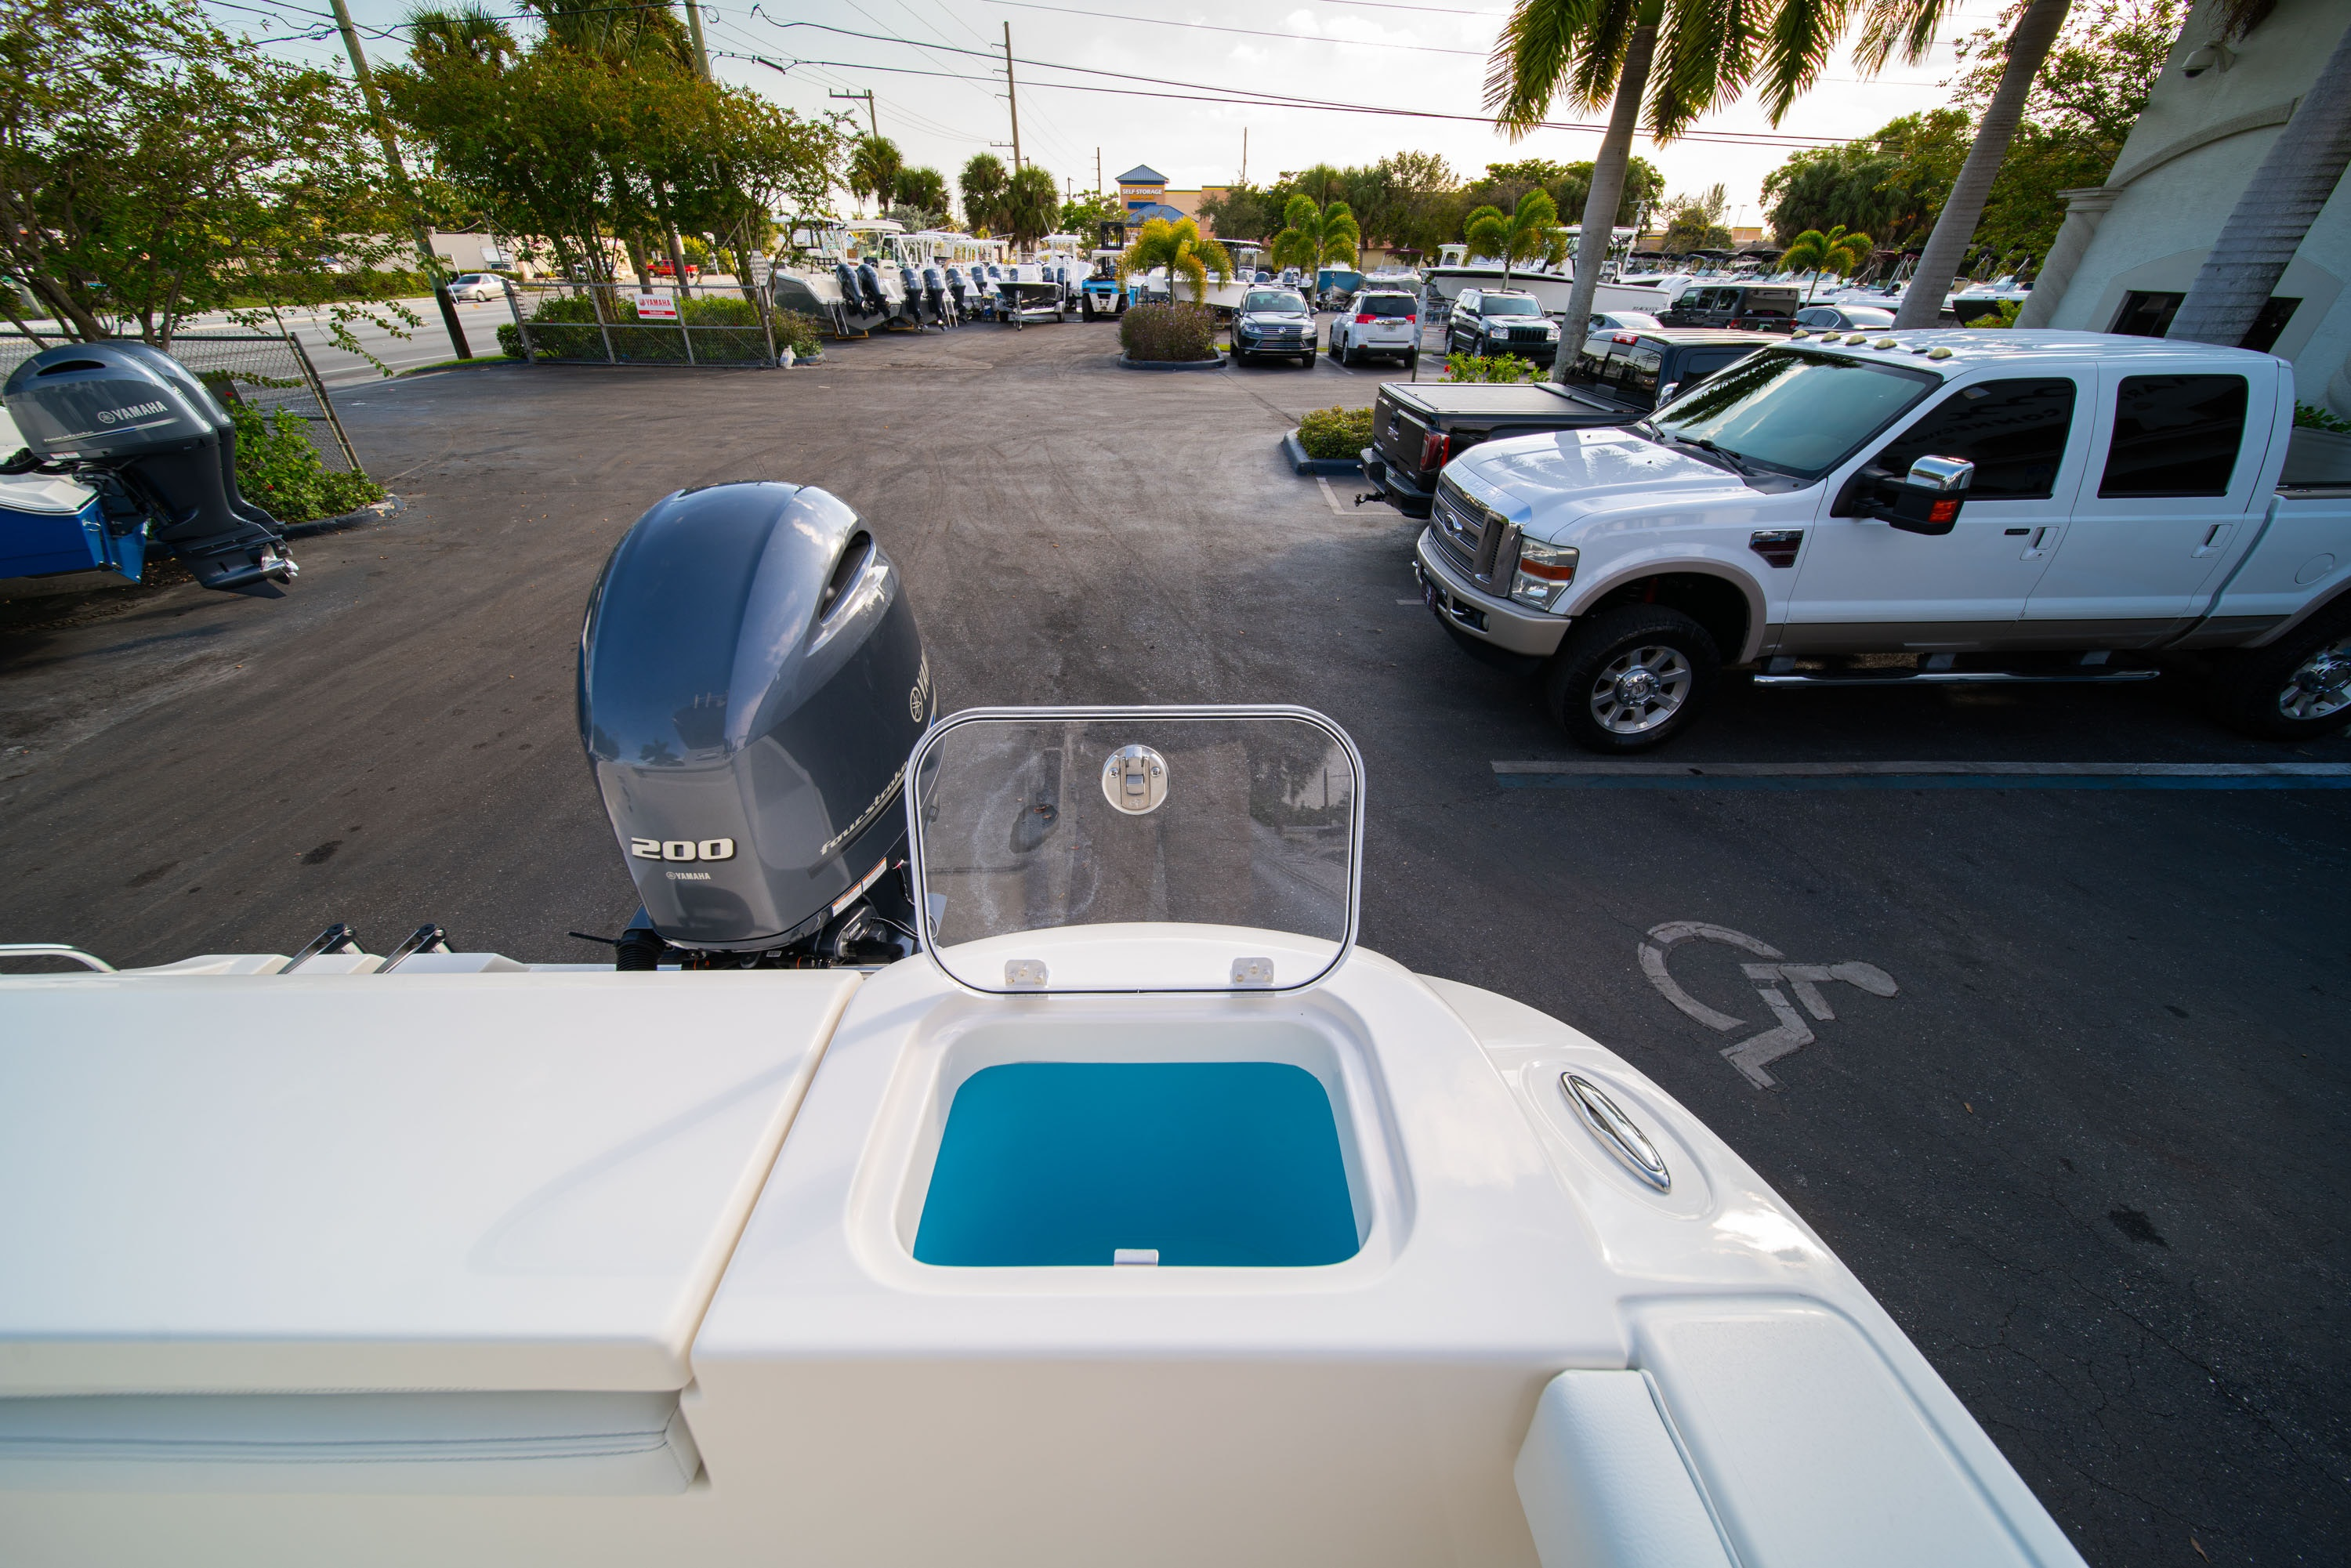 Thumbnail 13 for New 2020 Cobia 220 CC boat for sale in West Palm Beach, FL